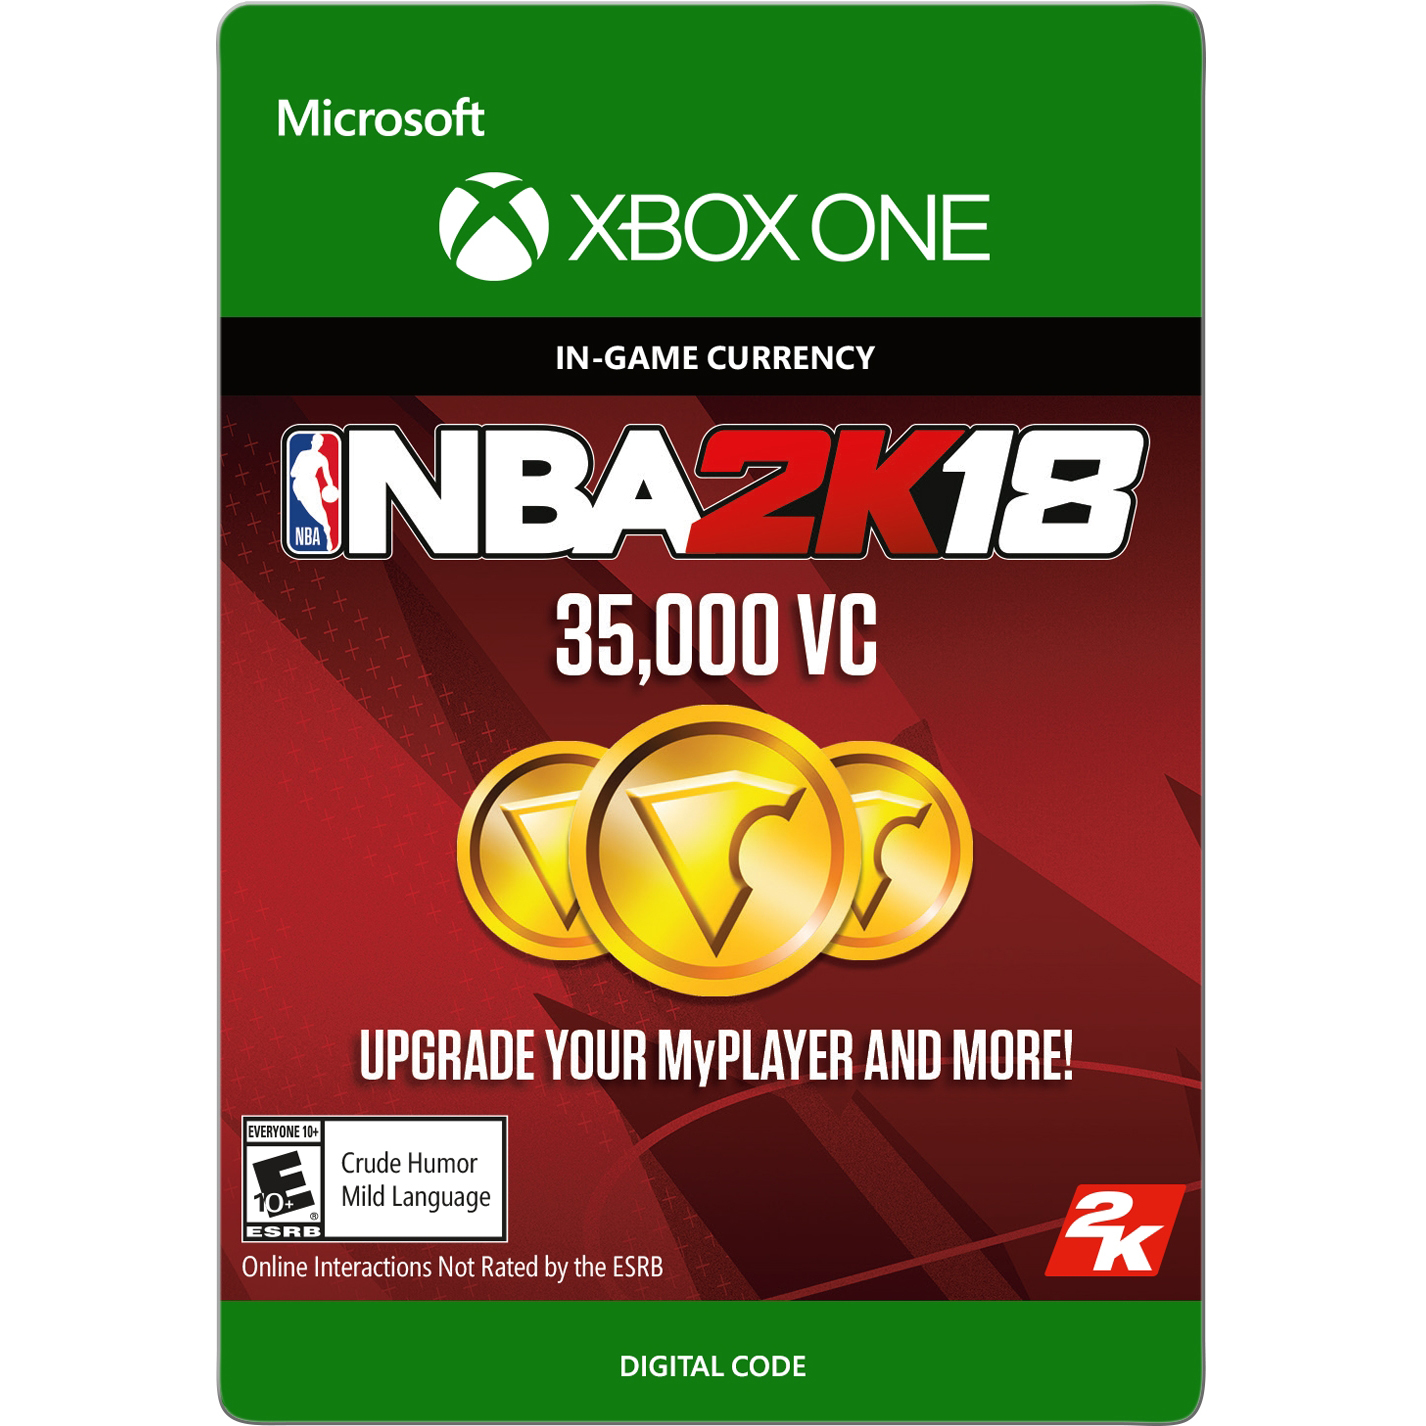 NBA 2K18 35,000 VC (Digital Download), 2K, Xbox One, 799366468424